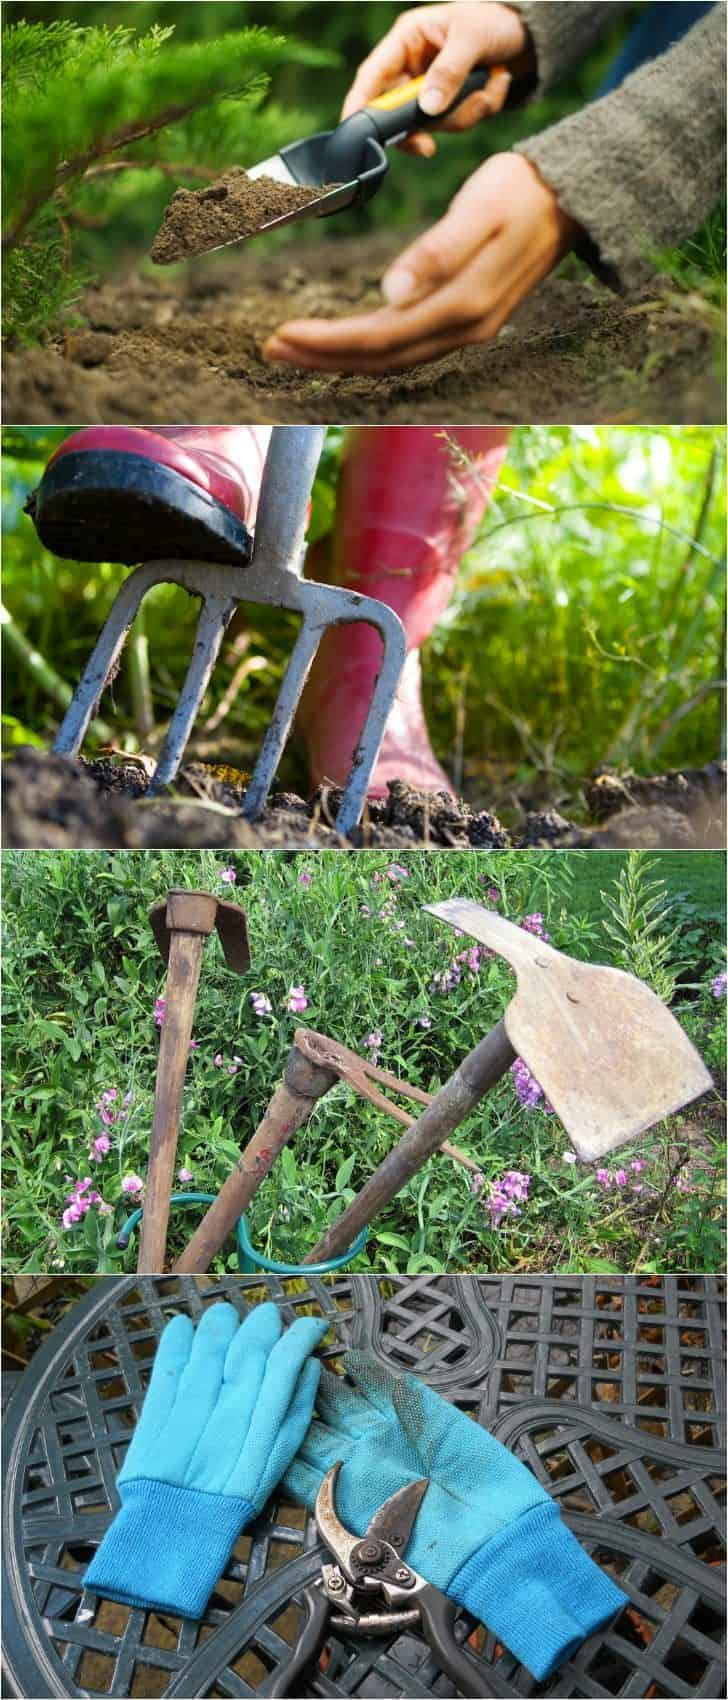 9 essential garden tools for your shed 1001 gardens - Build toolshed protect gardening tools ...